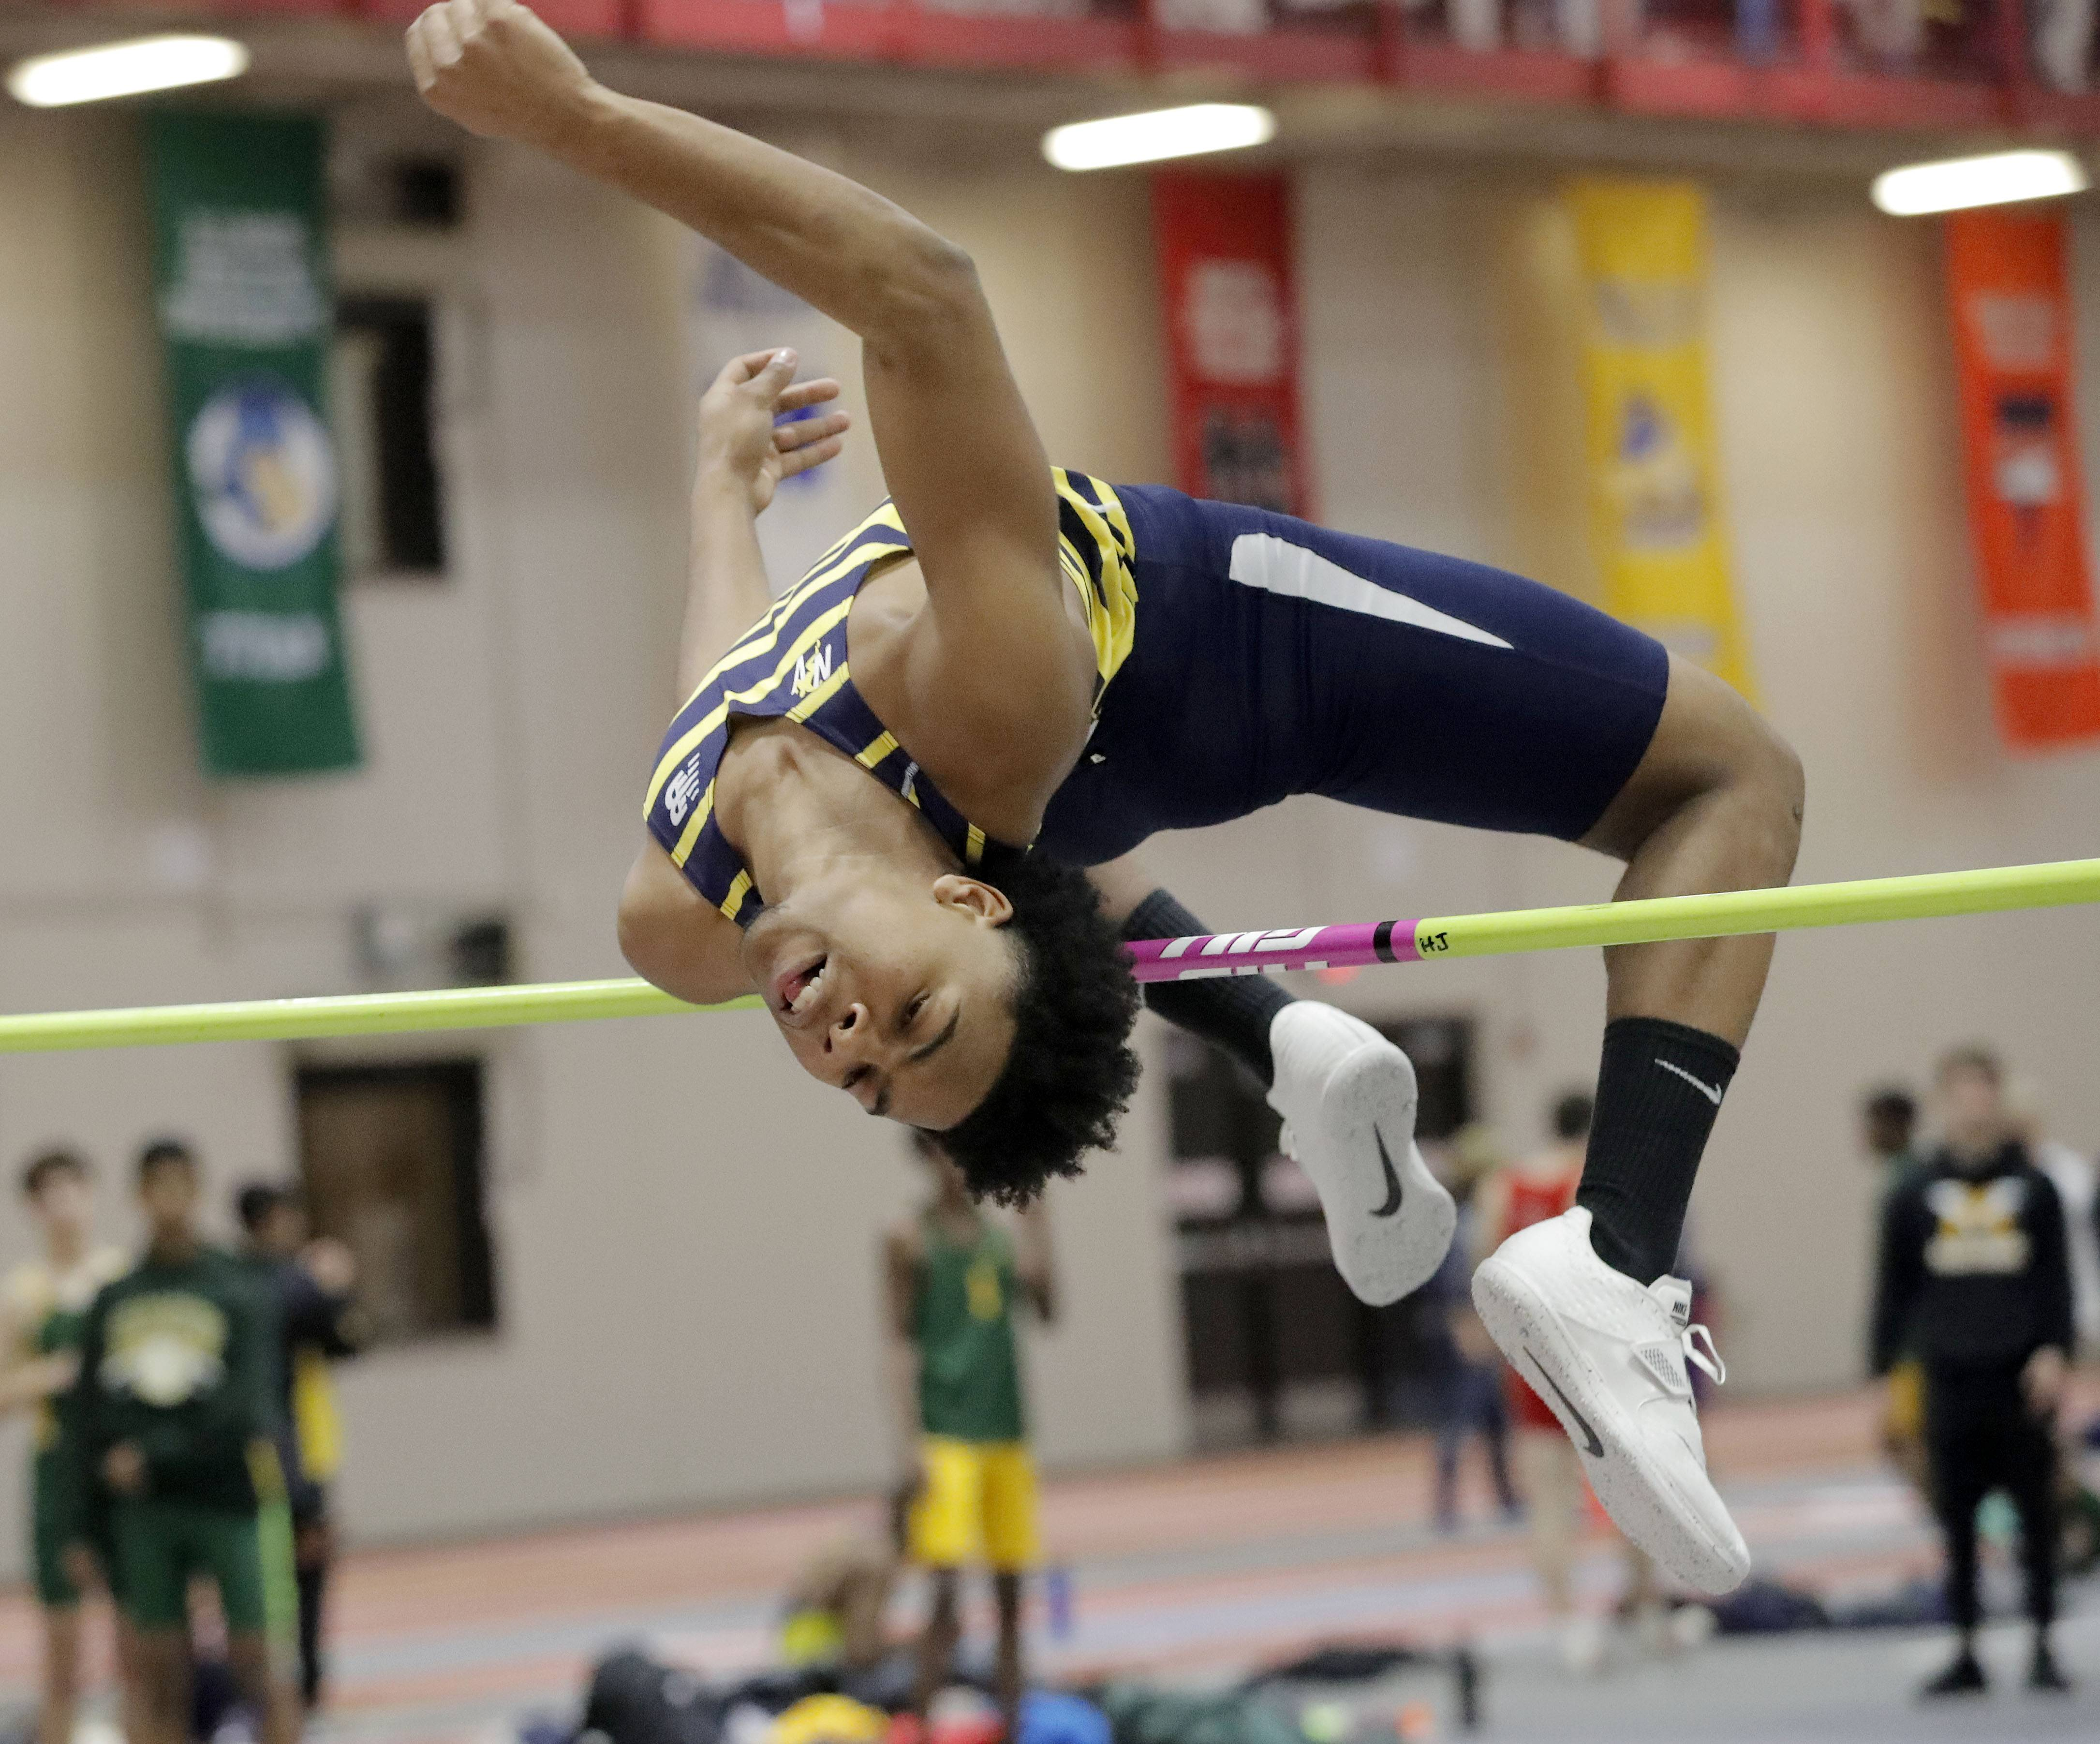 Neuqua Valley's Jared Malcolm competes in the high jump during the DuPage Valley Conference boys track meet at North Central College in Naperville Friday.